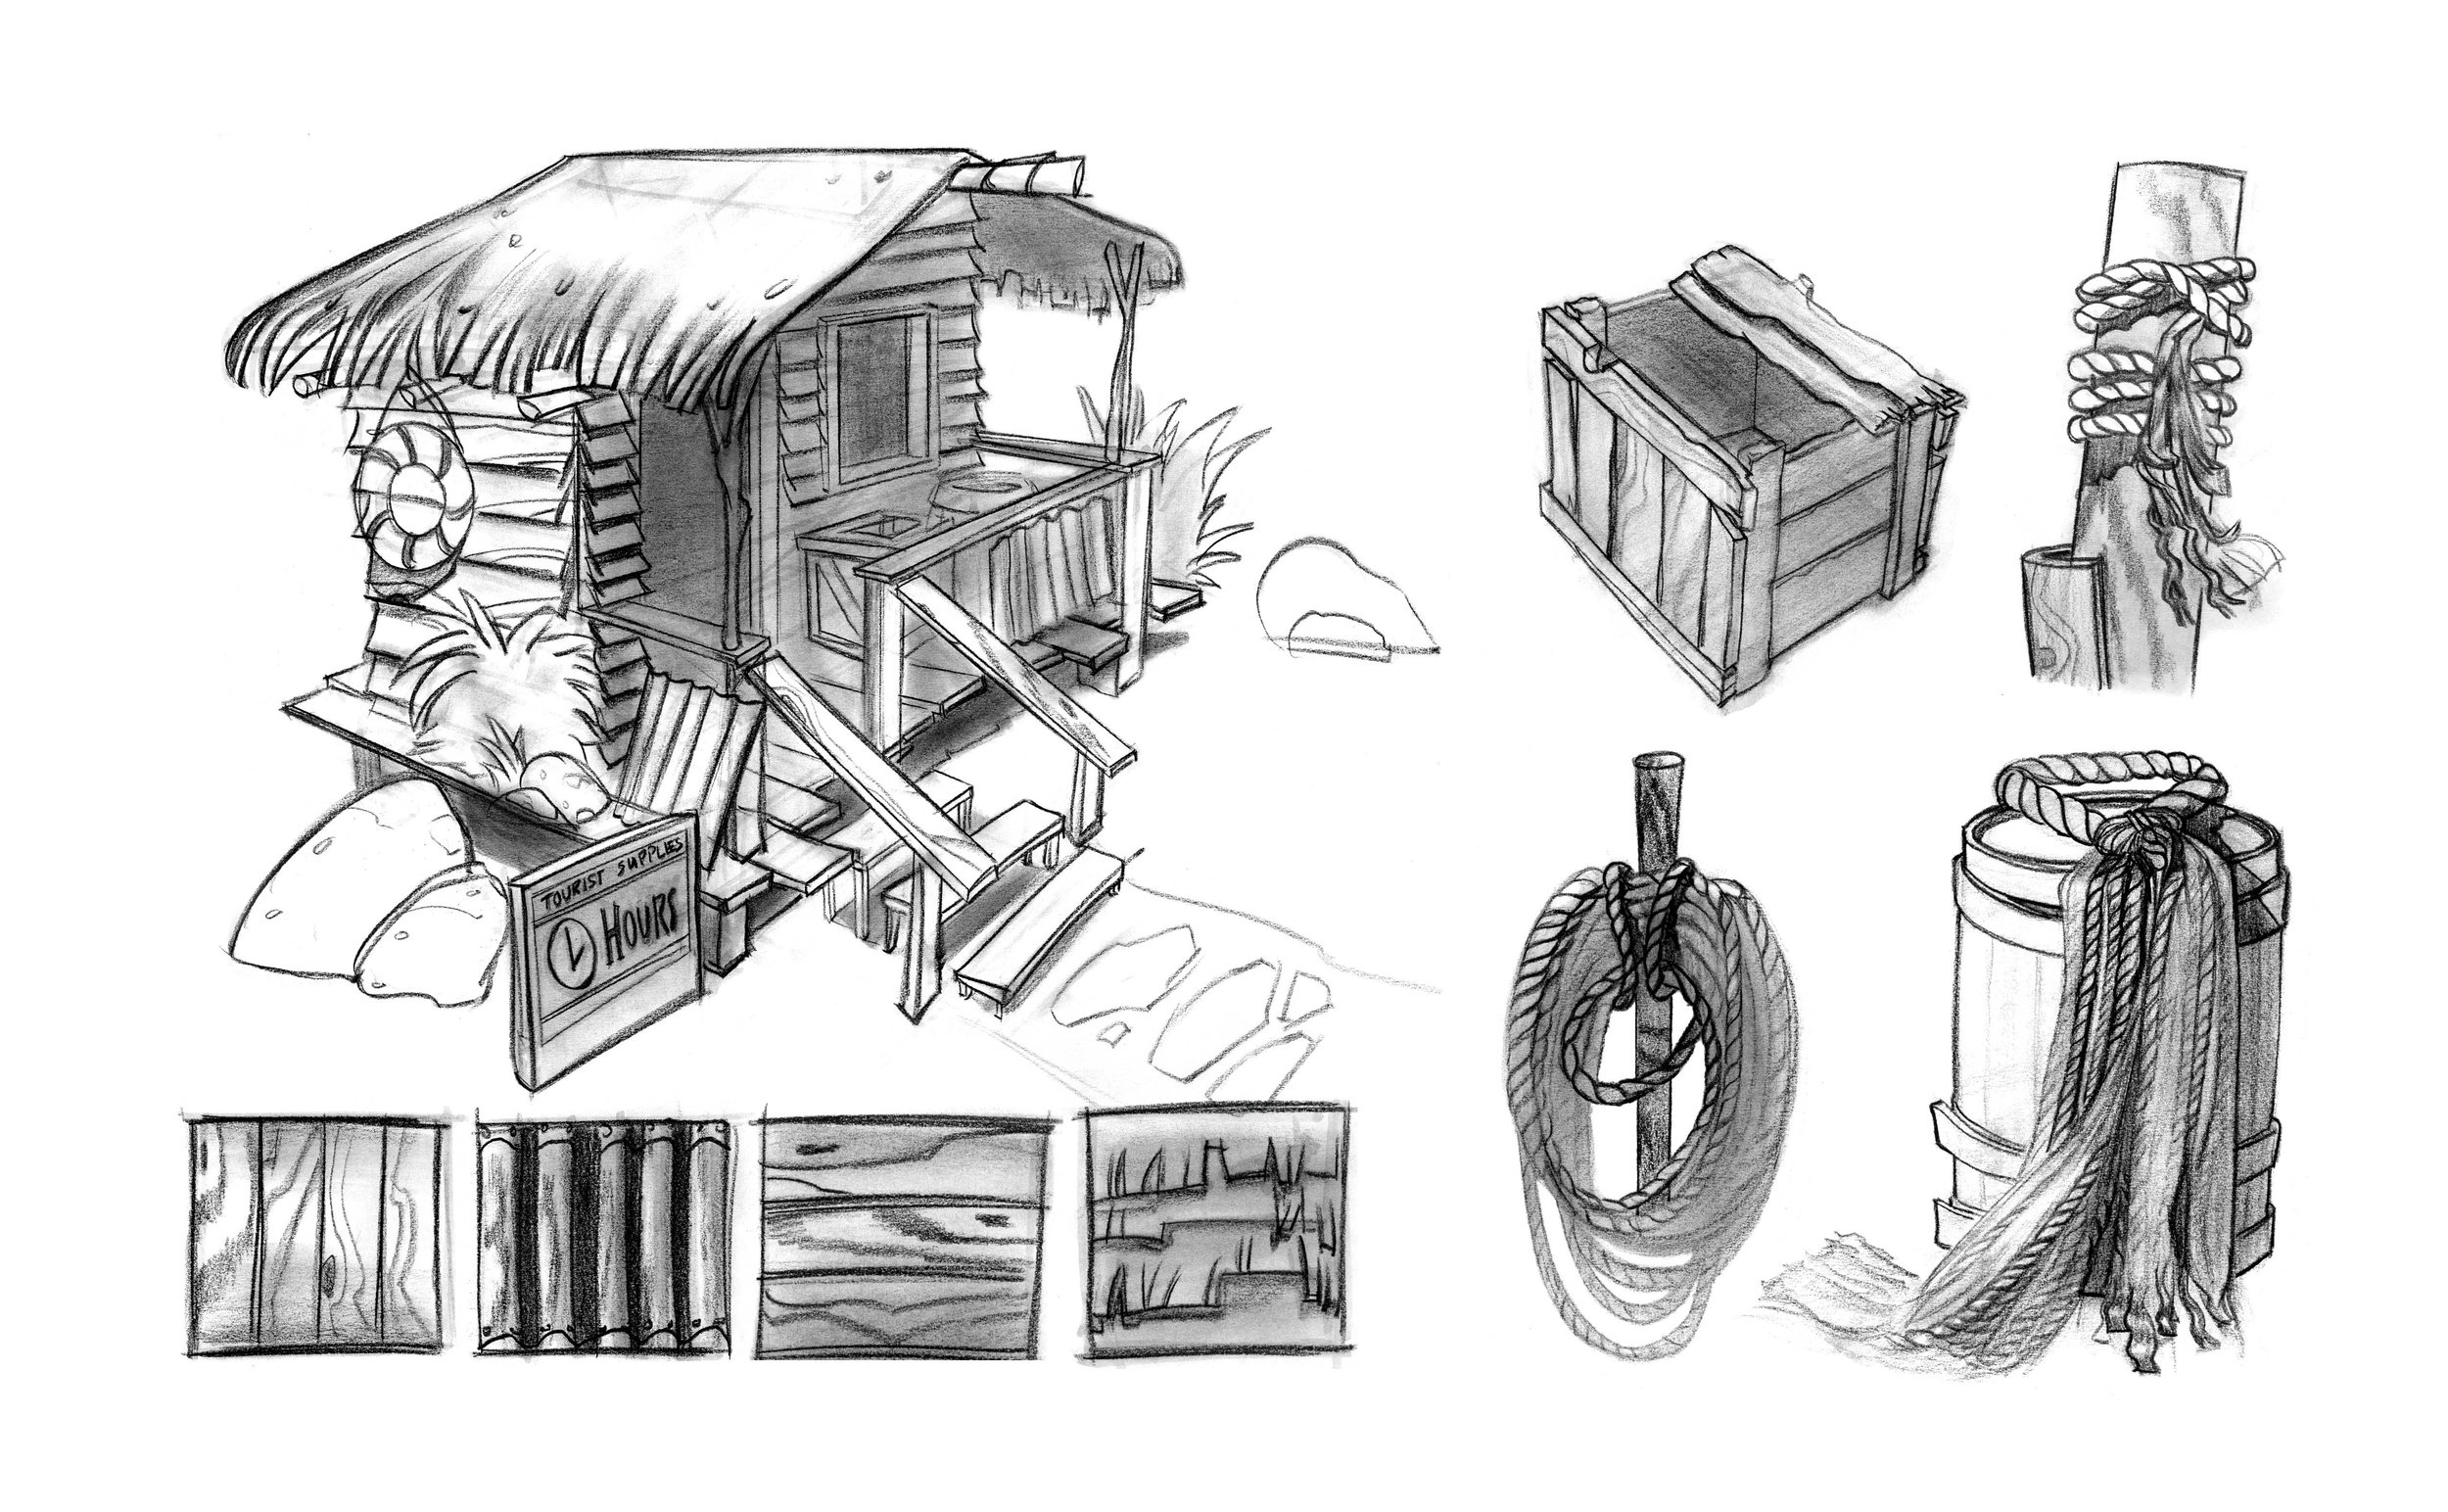 MITCHELL_LIN_0285721_TERM5_SKETCHING_FOR_ENTERTAINMENT_WILLWESTON_MITCHELL.LIN21@GMAIL.COM_SPRING2018_1.jpg